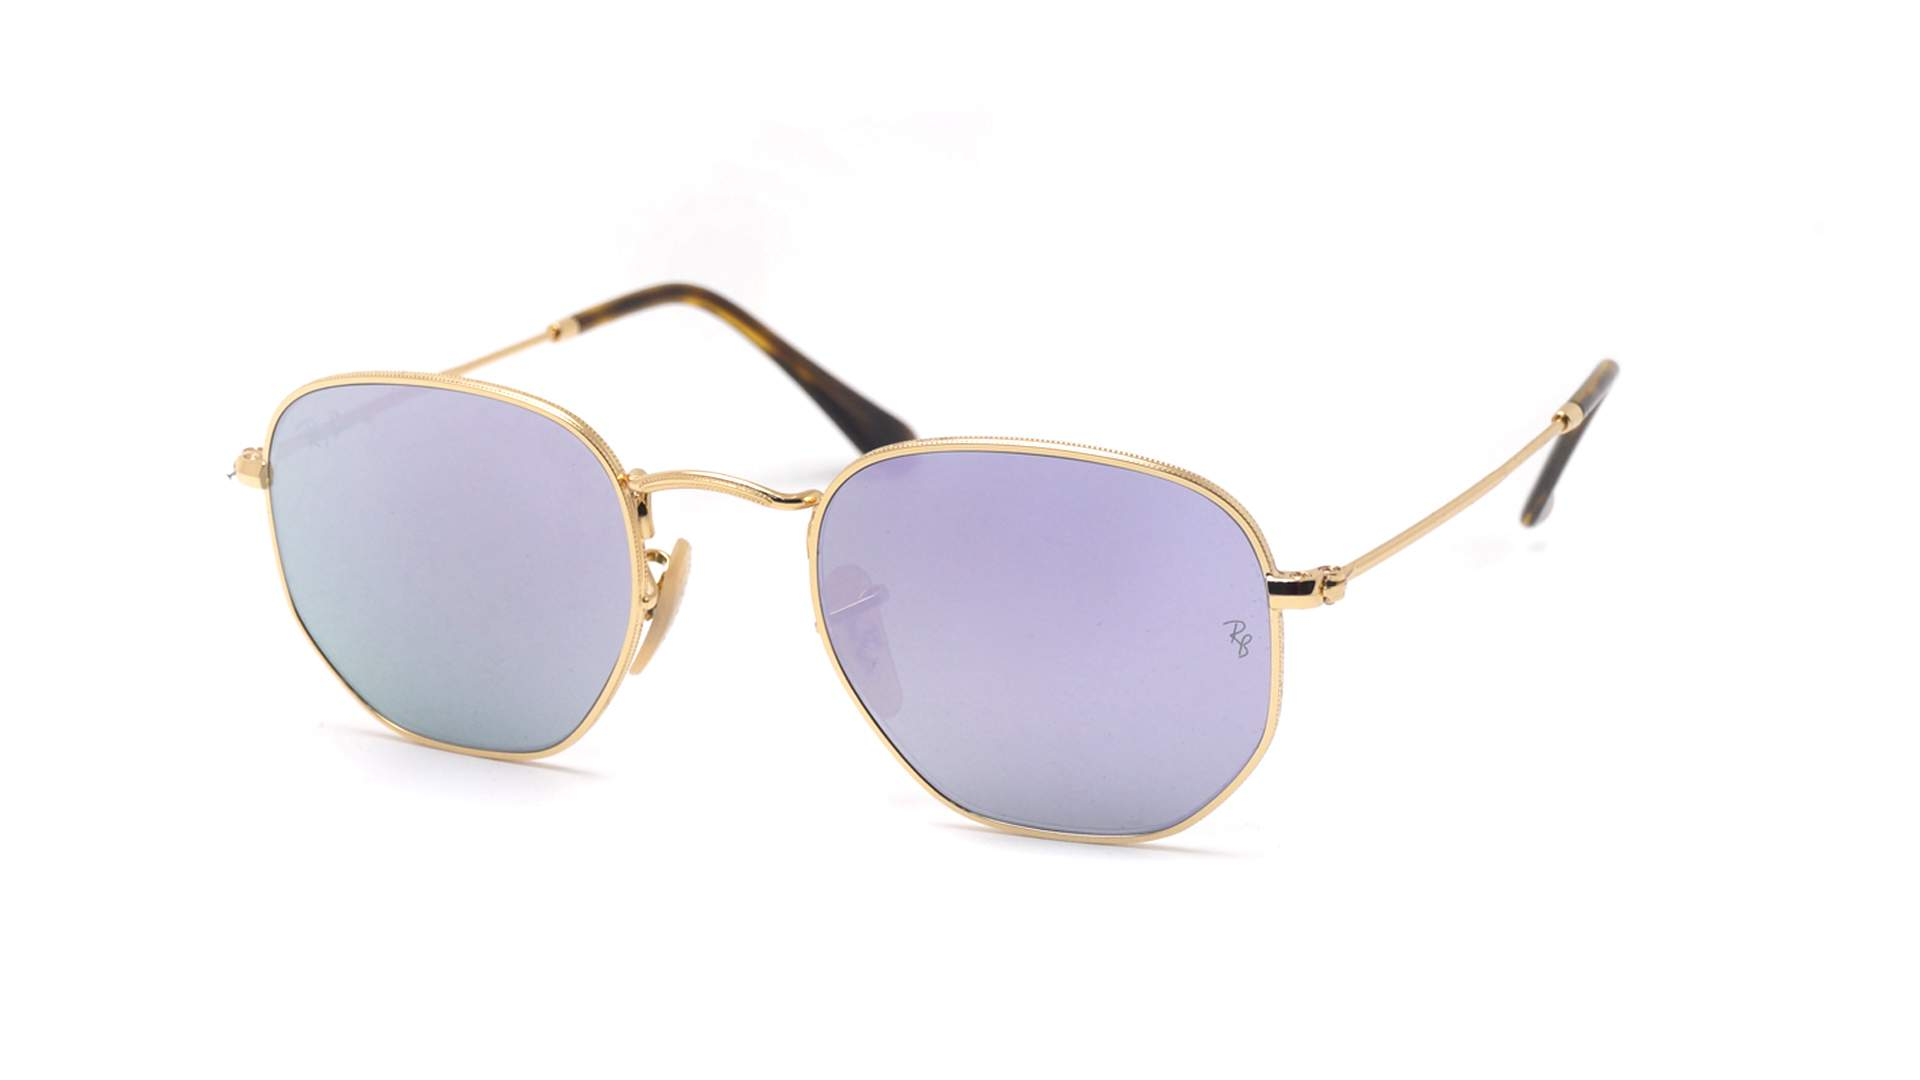 Sunglasses Ray-Ban Hexagonal Flat Lenses Gold RB3548N 001 8O 48-21 Small  Mirror c10133344bf4